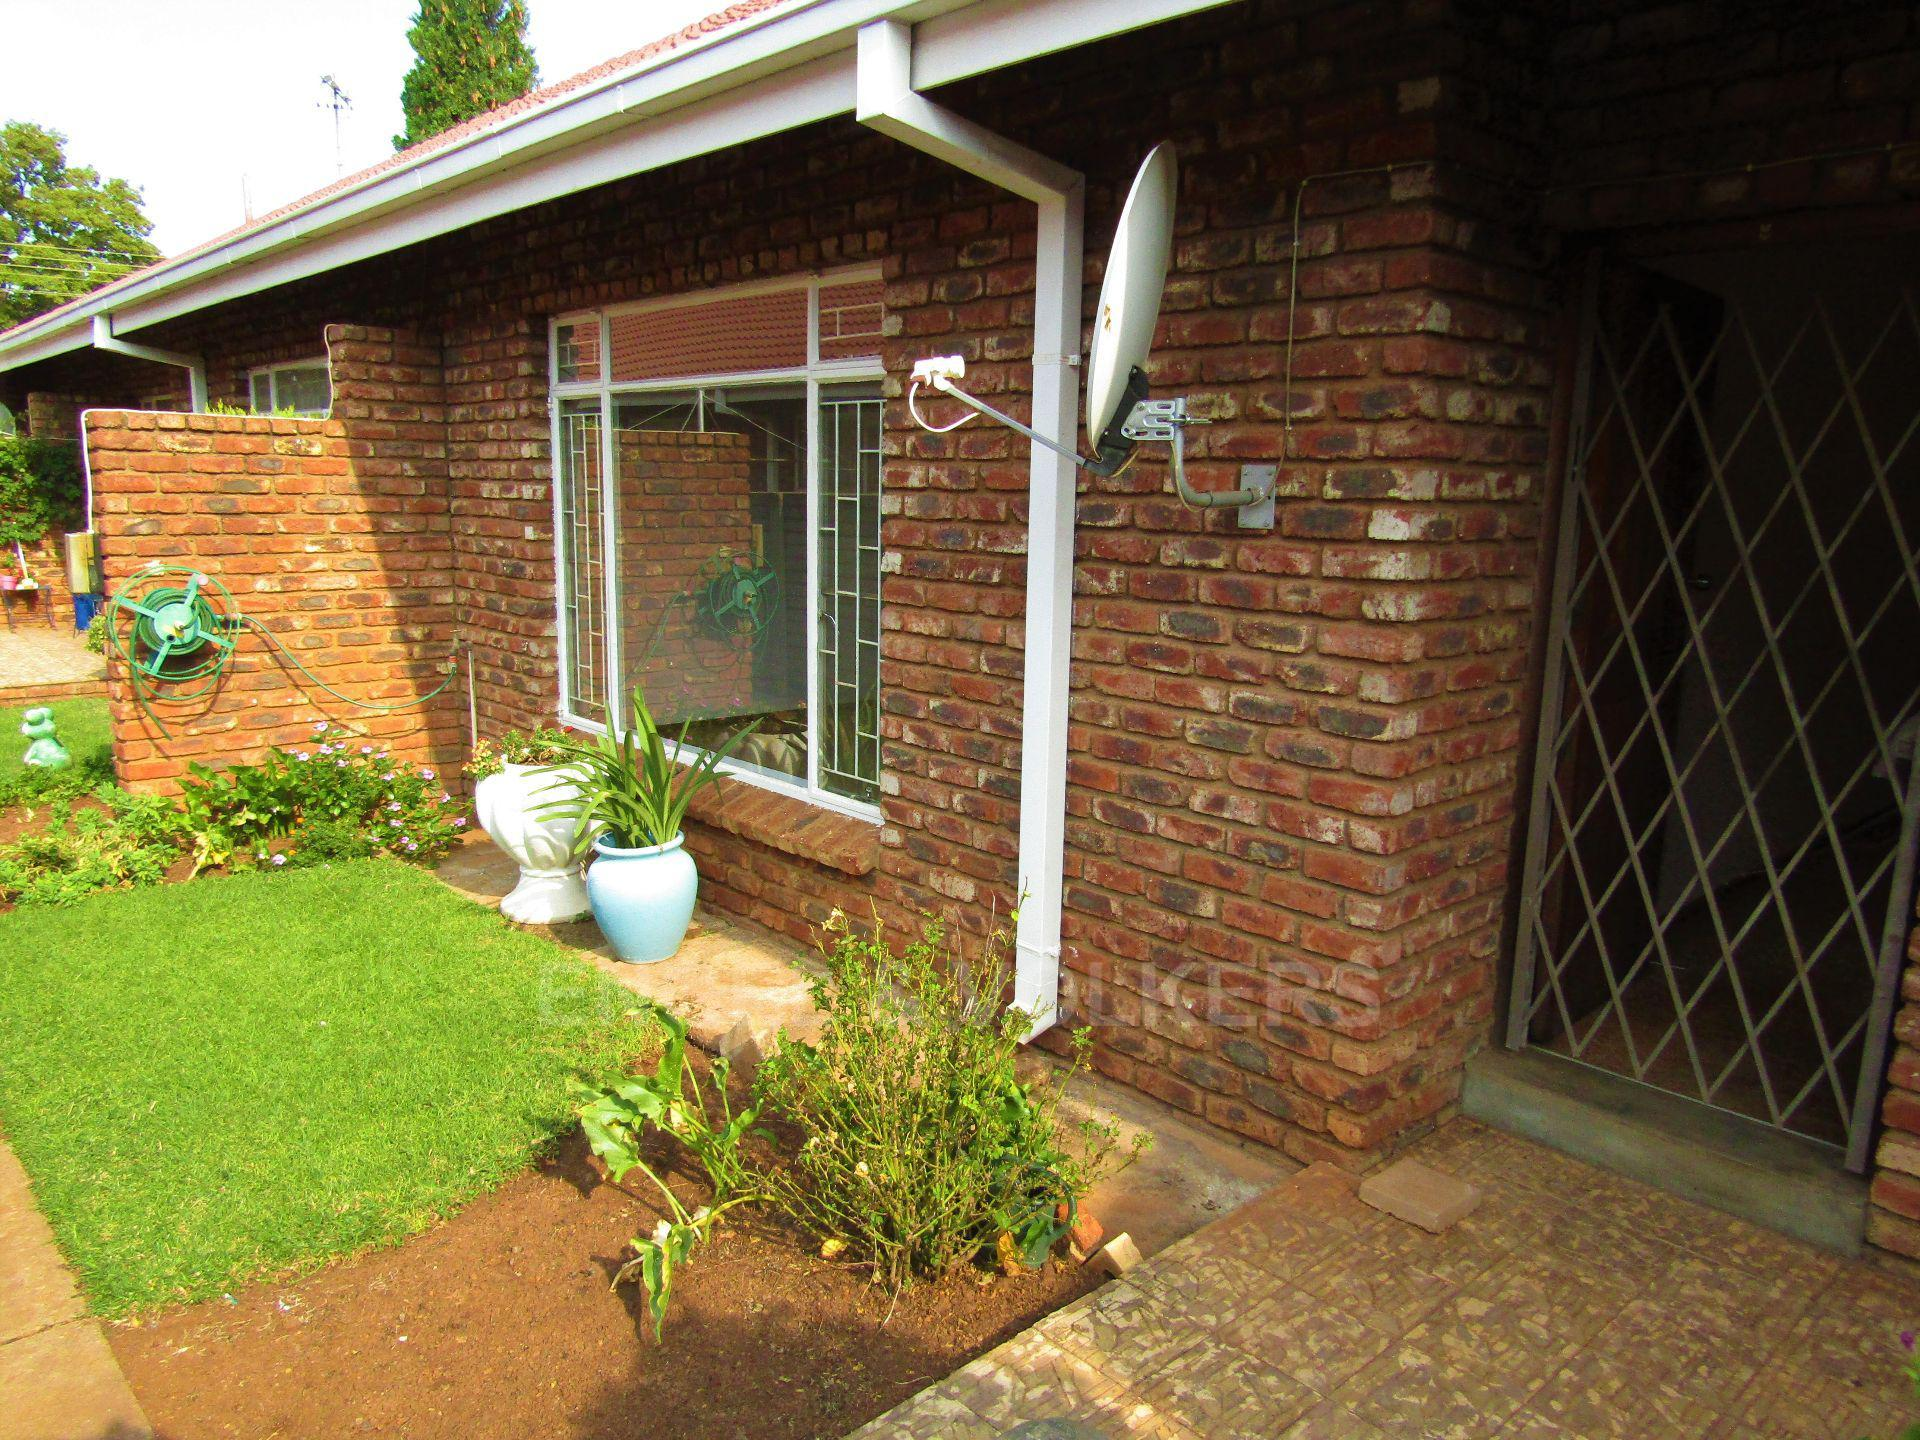 Potchefstroom Central property for sale. Ref No: 13459099. Picture no 2